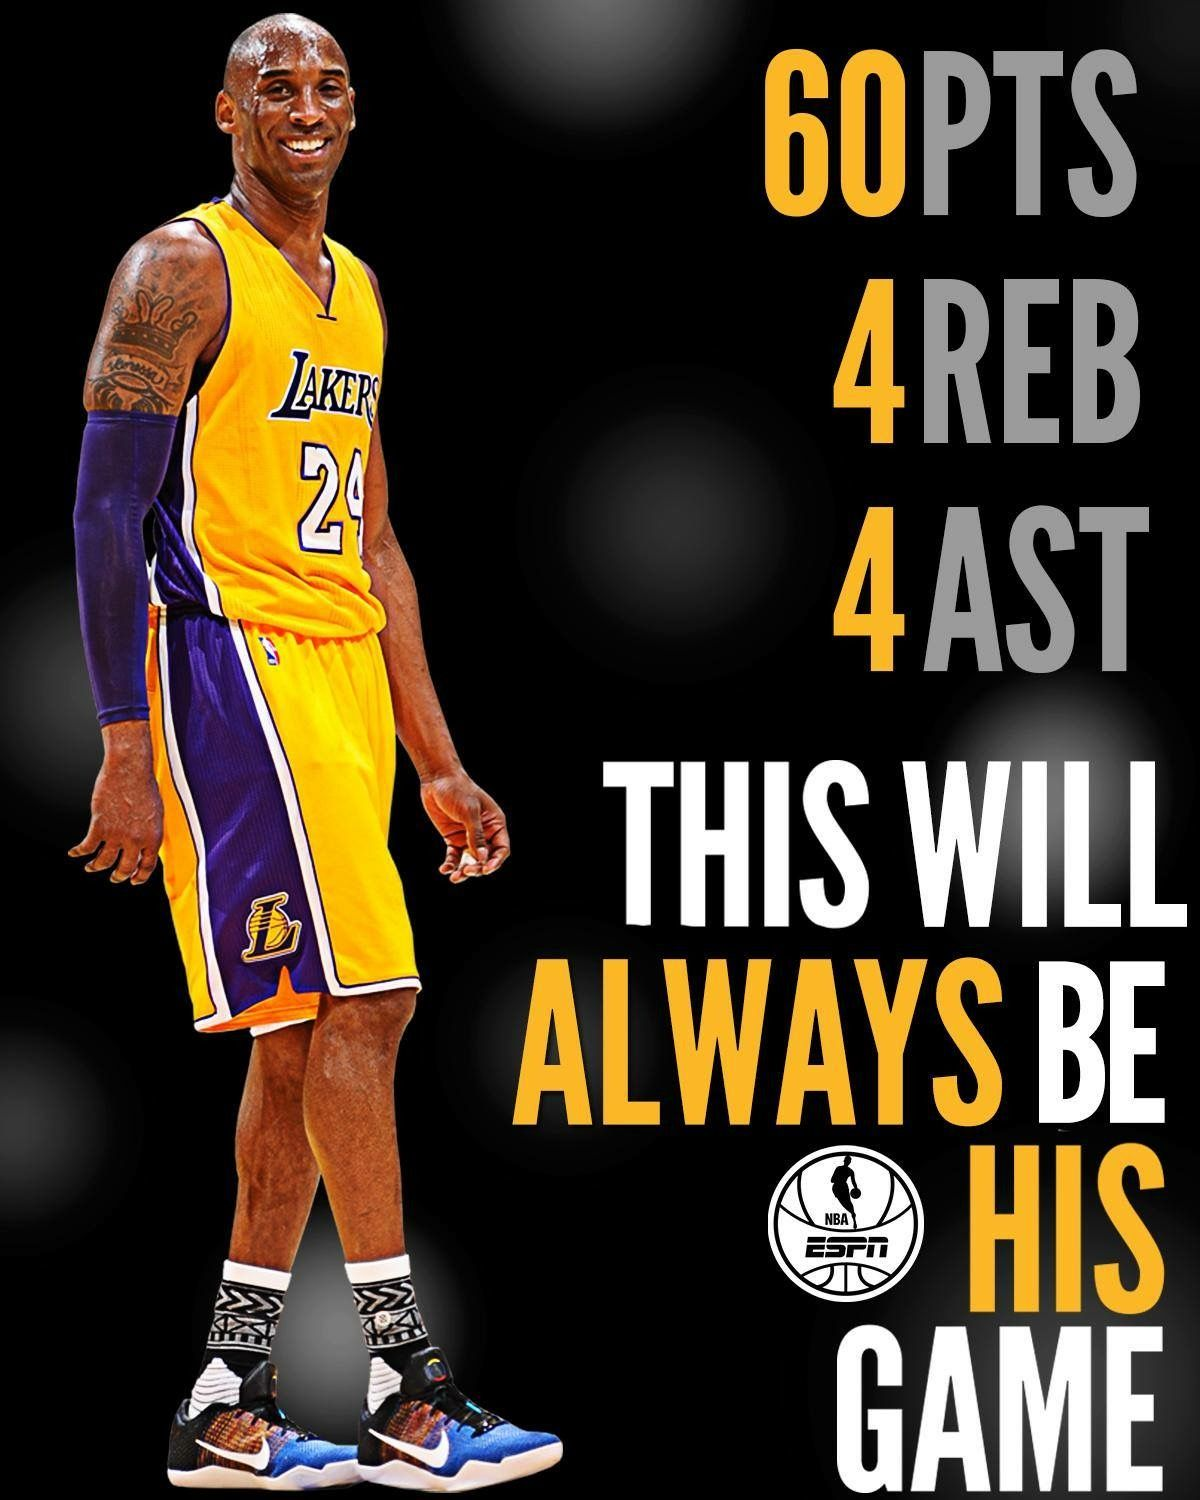 Pin By Jorge S On Sports Kobe Bryant Quotes Kobe Bryant Nba Kobe Bryant 24